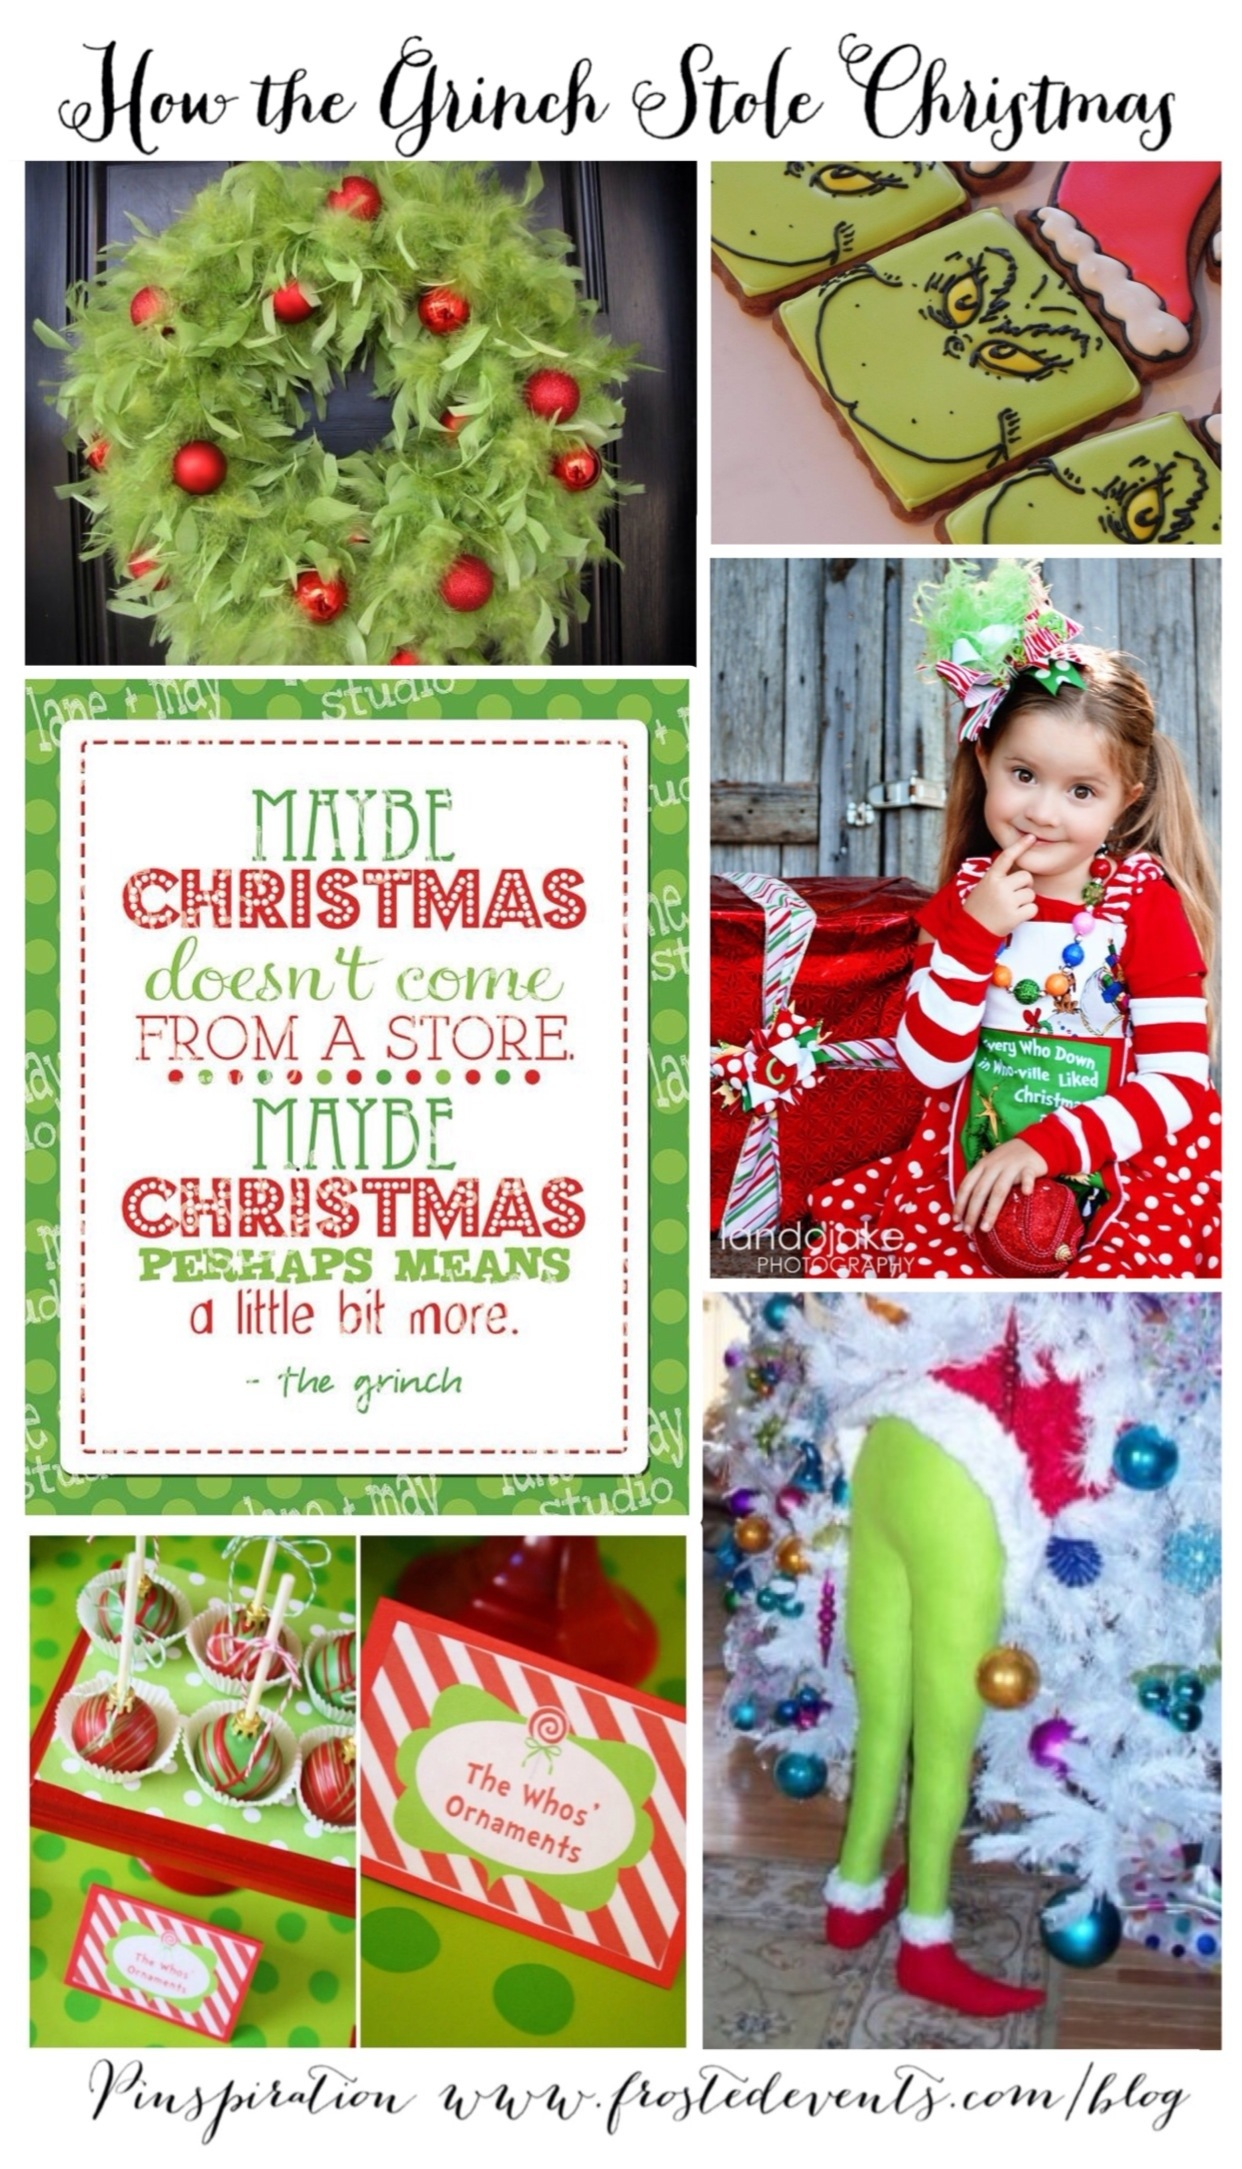 follow us on pinterest the grinch how the grinch stole christmas inspired by the grinch movie 2018 - How The Grinch Stole Christmas Decorating Ideas